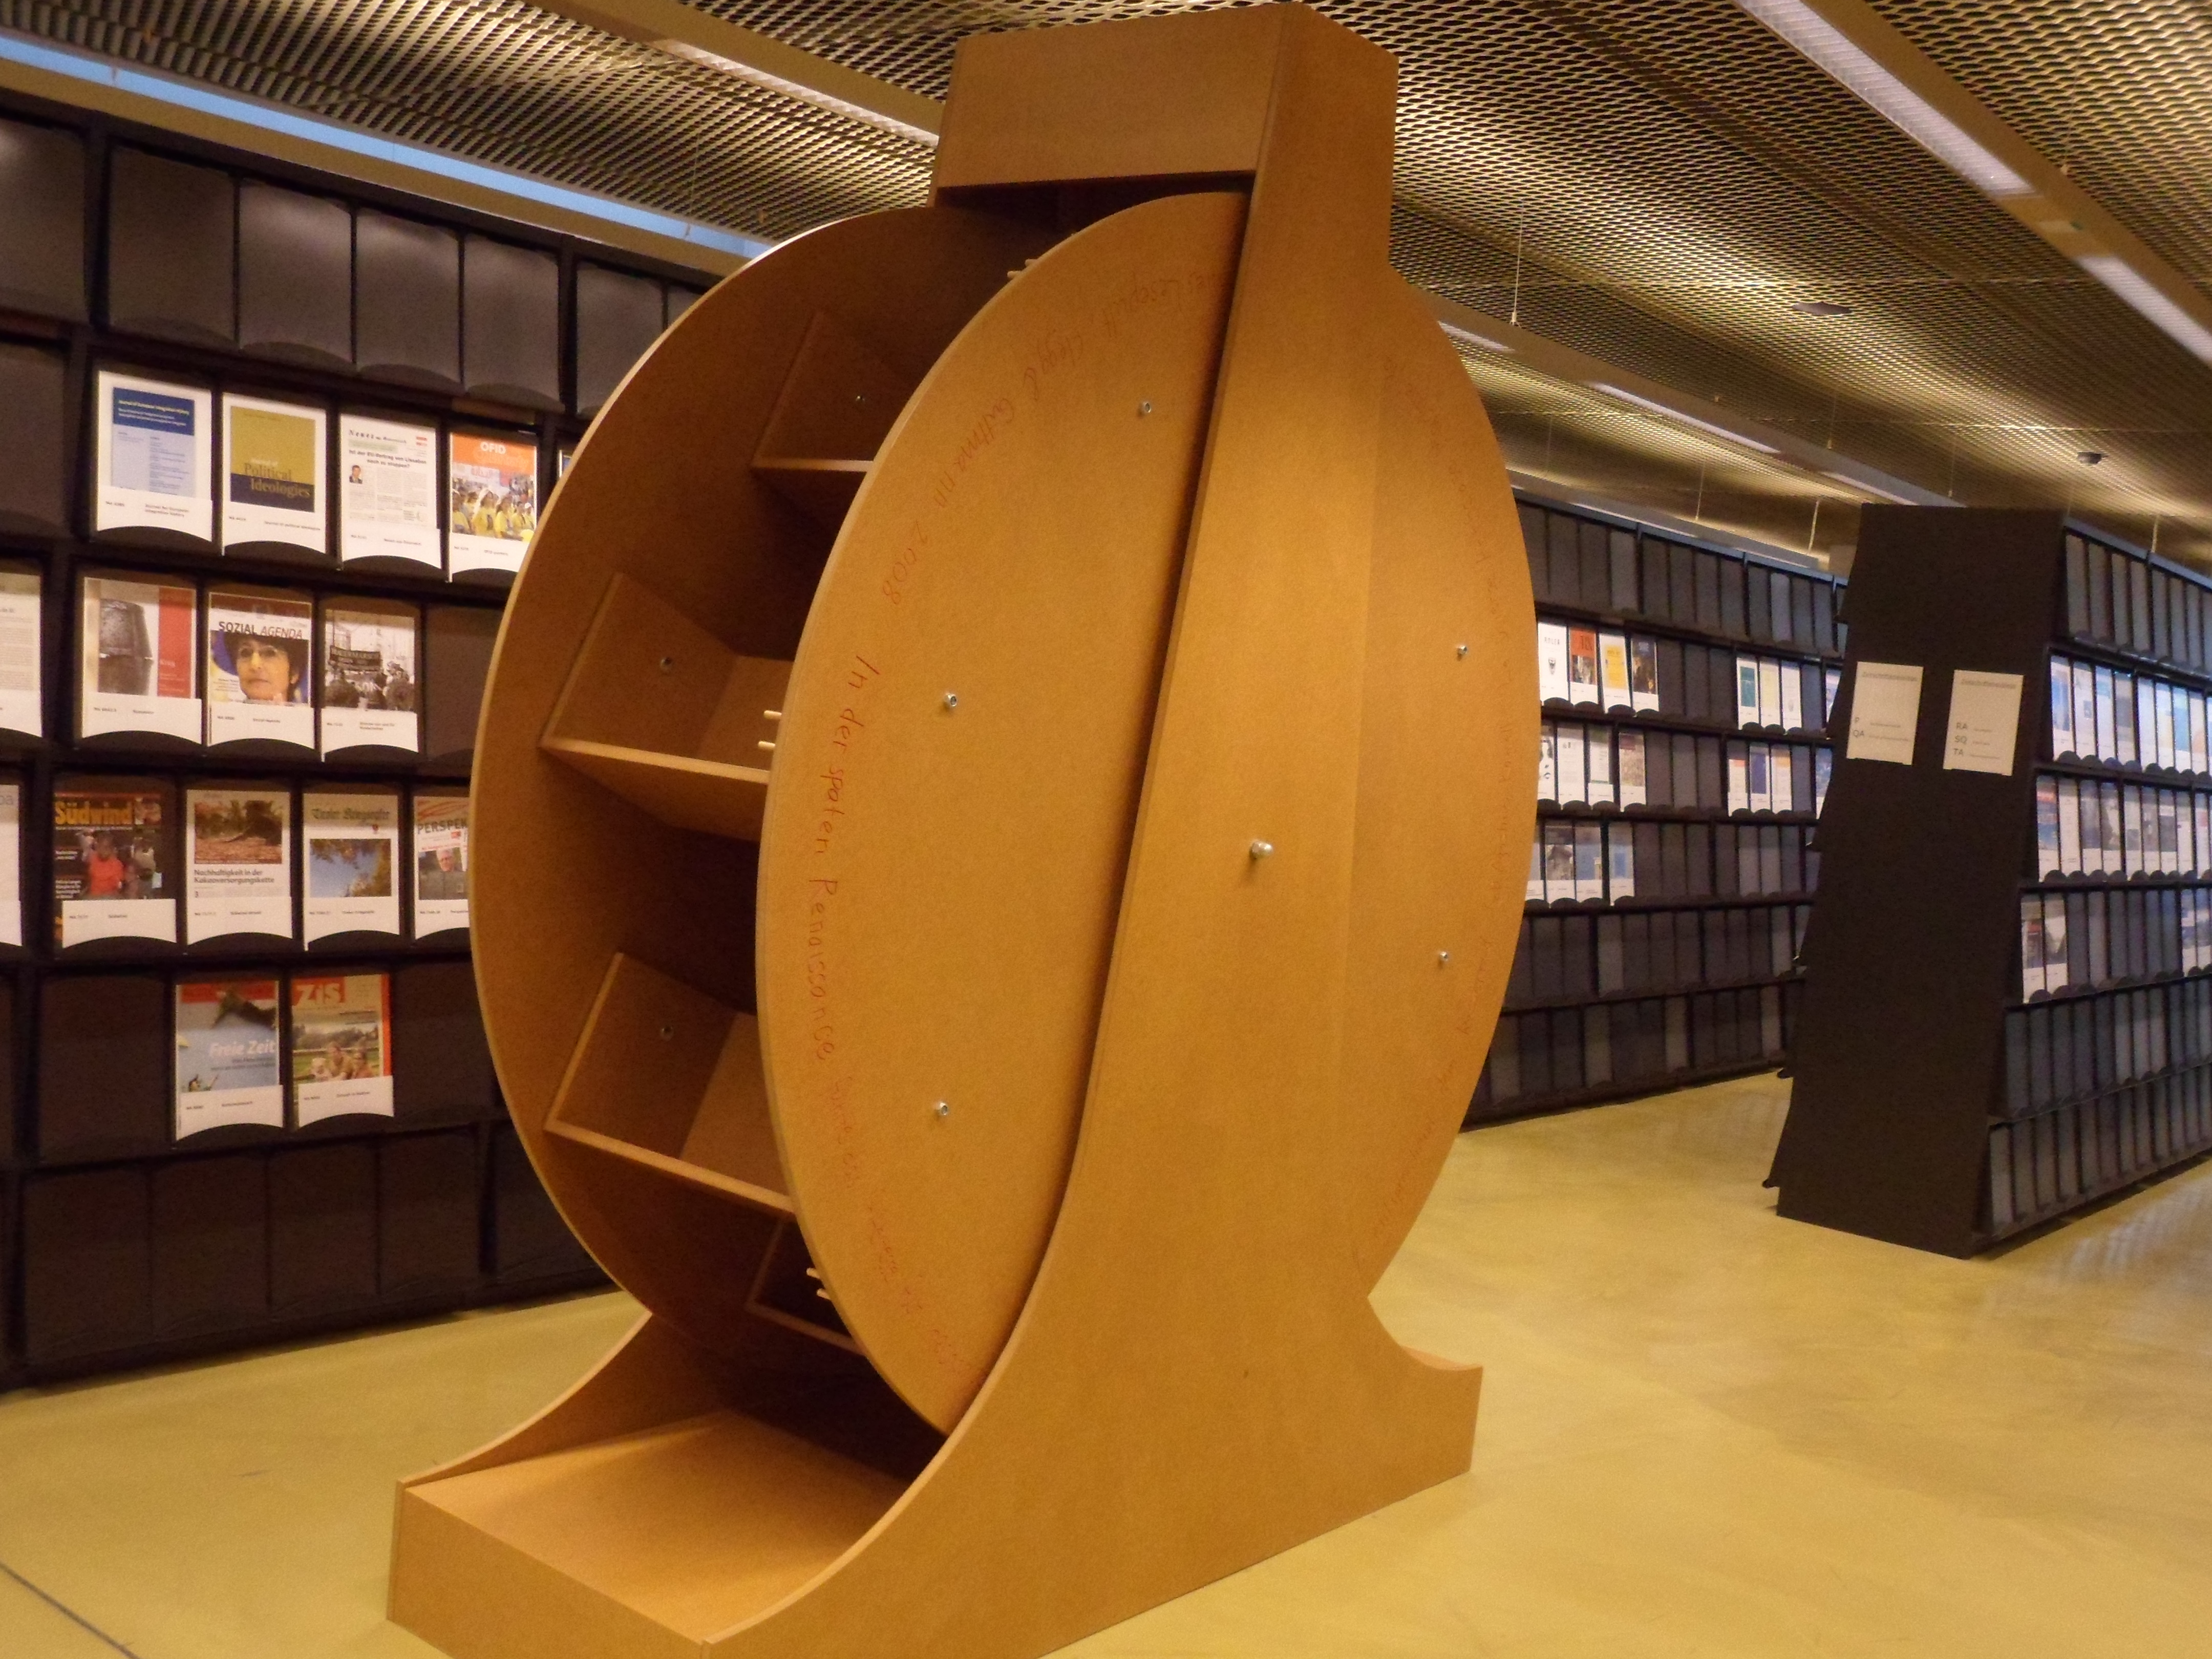 A plywood wheel like a waterwheel with angled bookshelves in place of the buckets